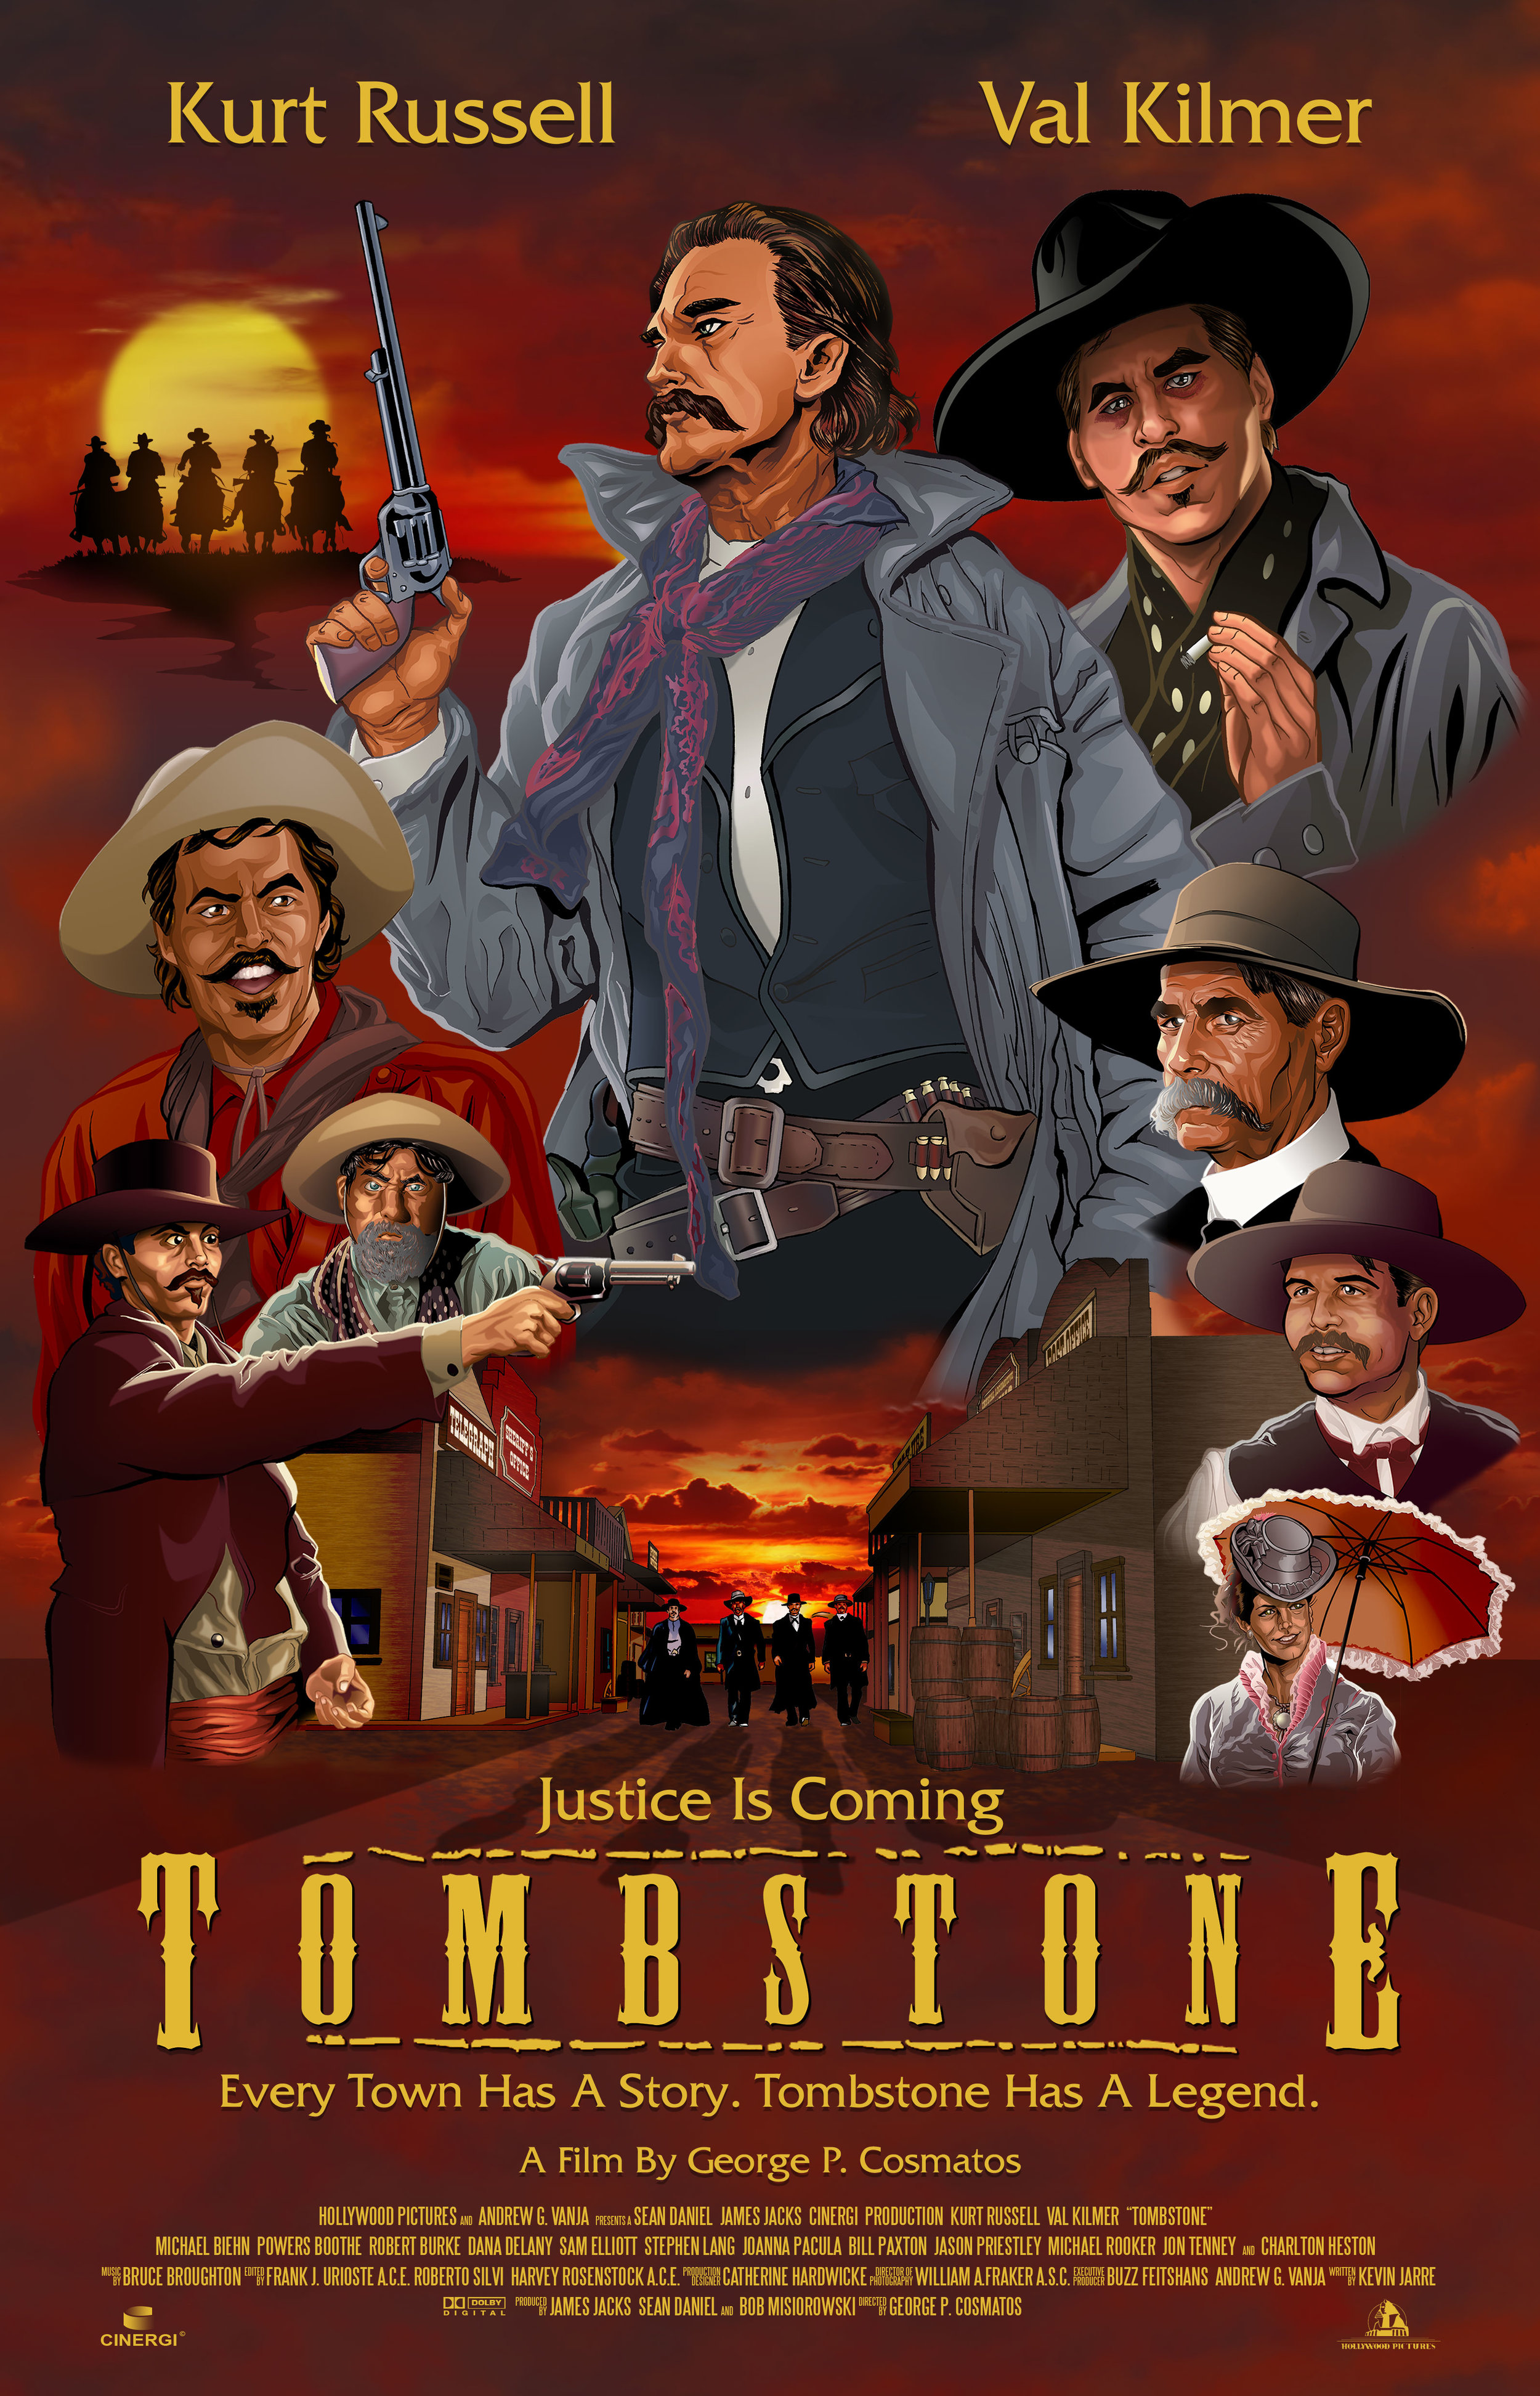 "Tombstone Val Kilmar Movie Poster Kurt Russell /""Every town has a story...."